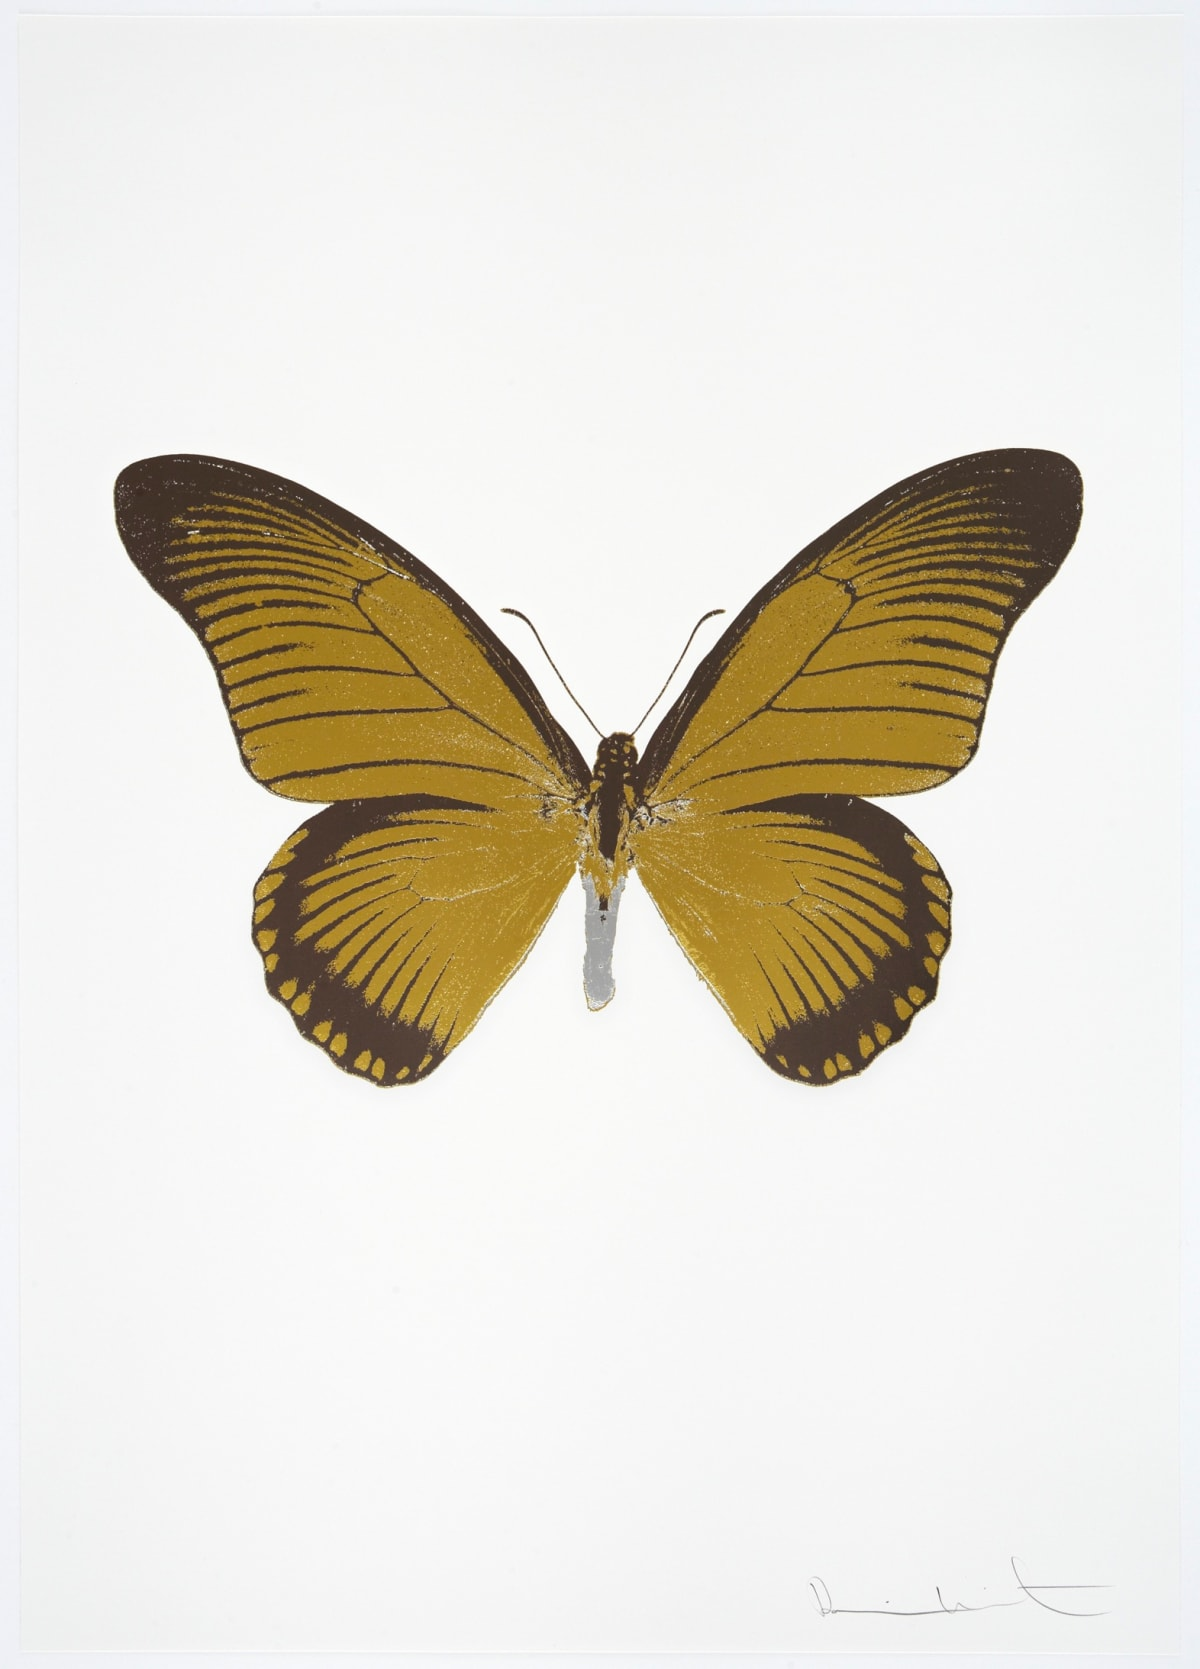 Damien Hirst The Souls IV - Oriental Gold/Gunmetal/Silver Gloss, 2010 3 colour foil block on 300gsm Arches 88 archival paper. Signed and numbered. Published by Paul Stolper and Other Criteria 72 x 51cm OC8032 / 1418-55 Edition of 15